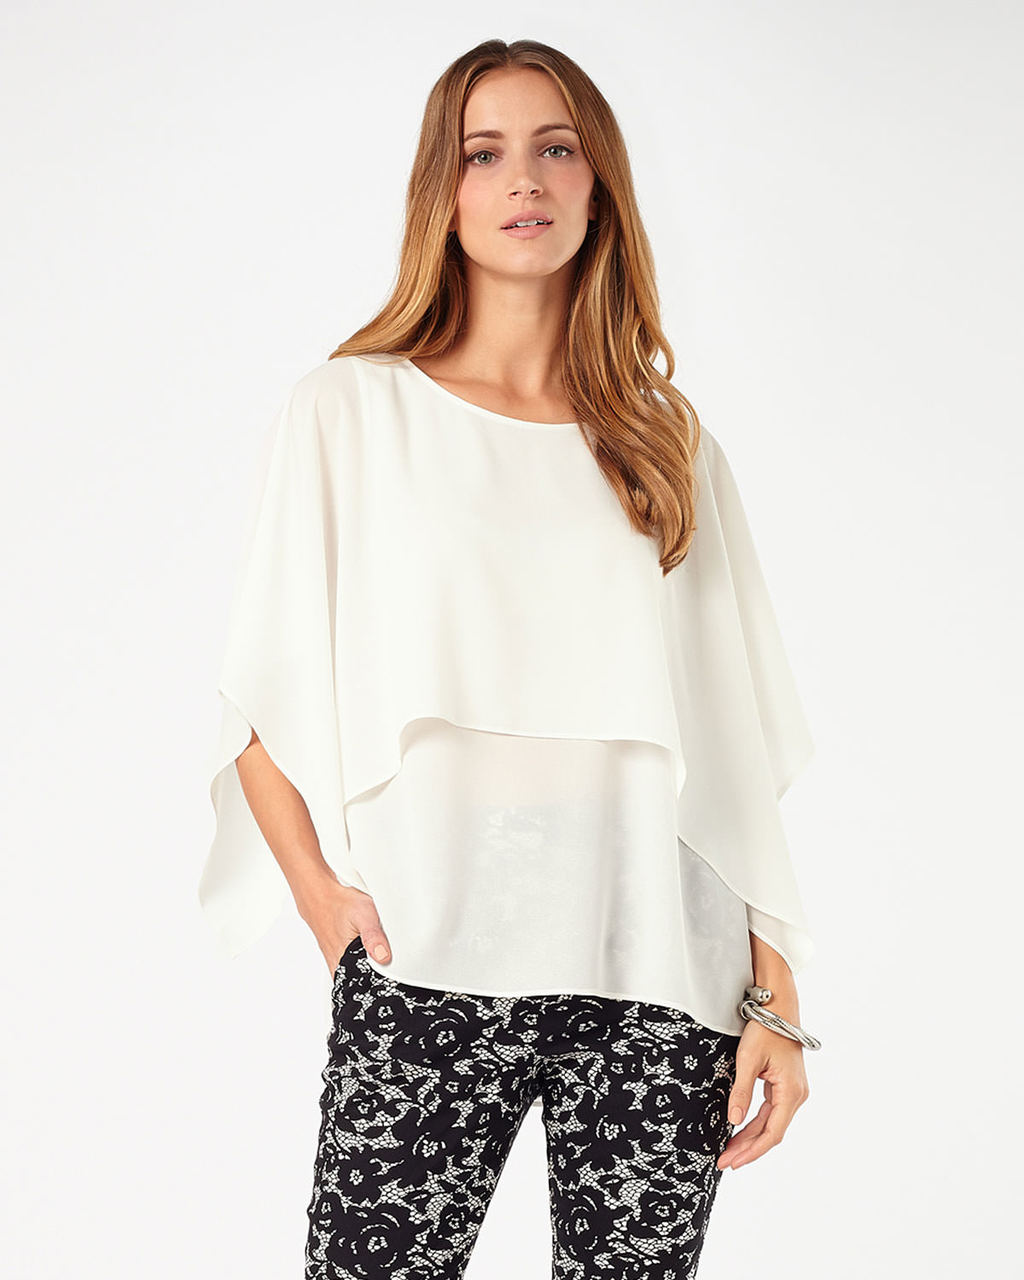 Kalila Cape Sleeve Blouse - neckline: round neck; sleeve style: angel/waterfall; pattern: plain; style: blouse; predominant colour: ivory/cream; occasions: work, creative work; length: standard; fibres: polyester/polyamide - 100%; fit: loose; sleeve length: 3/4 length; texture group: crepes; pattern type: fabric; season: s/s 2016; wardrobe: basic